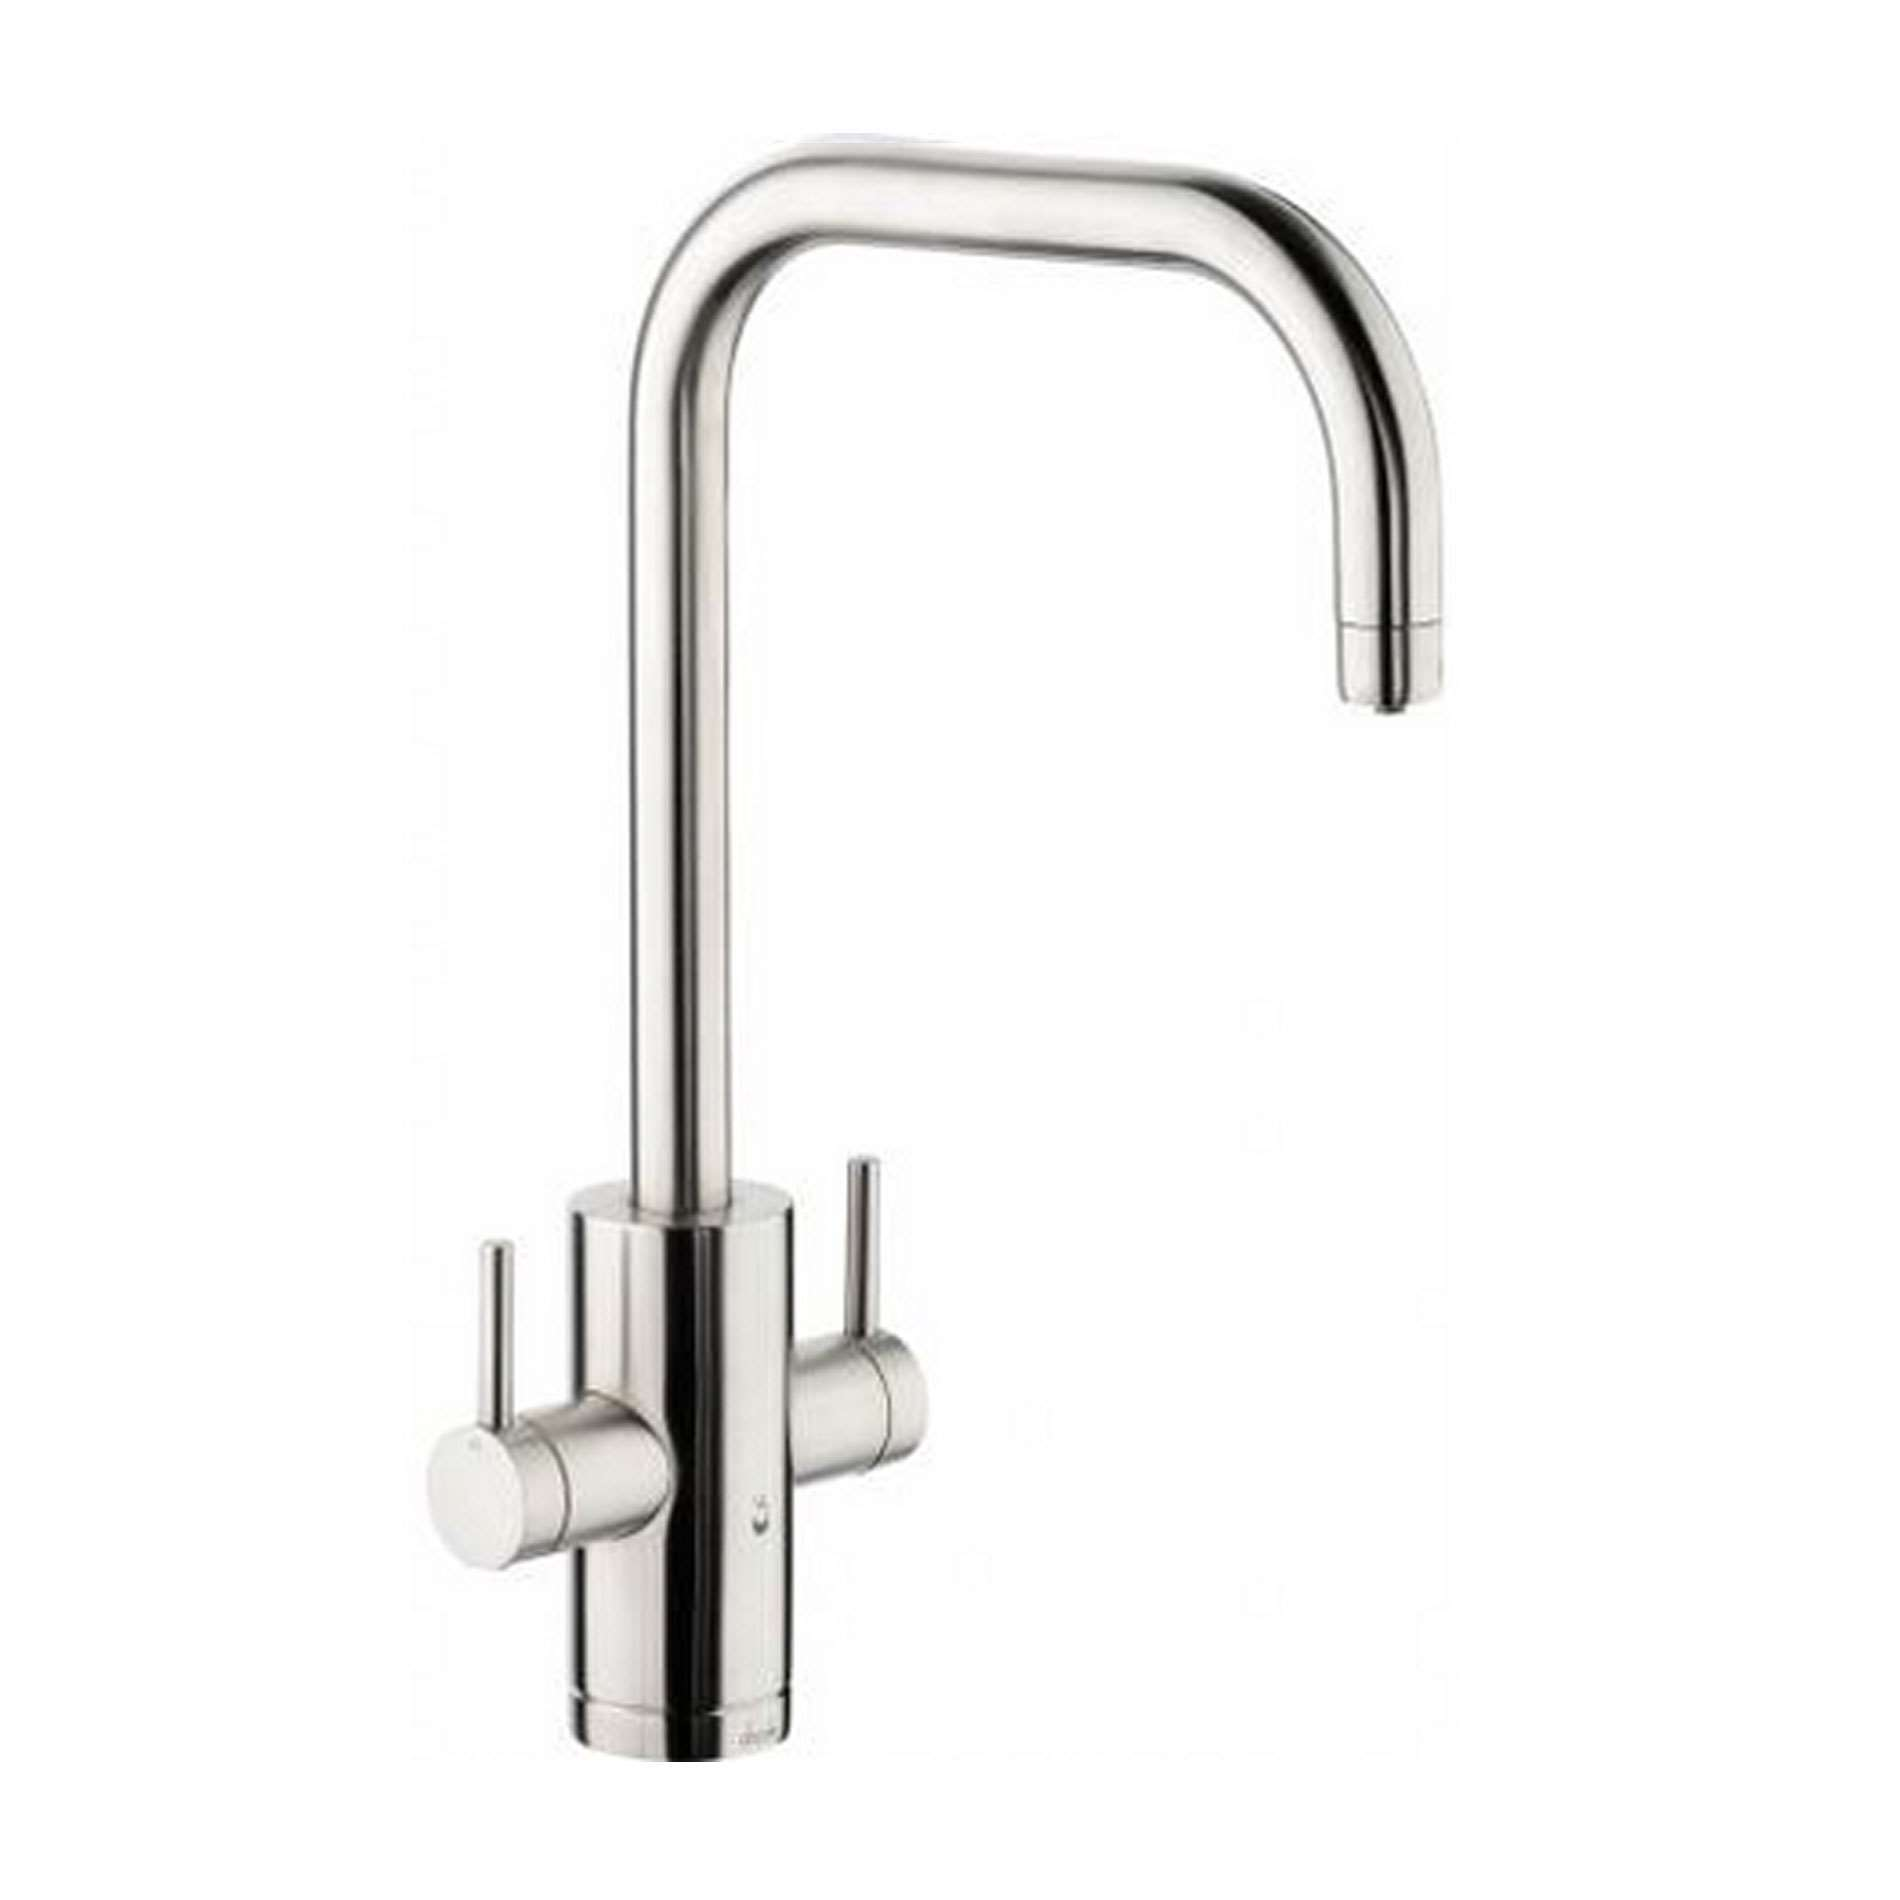 Picture of Pronteau Project PT1004 Brushed Nickel Tap